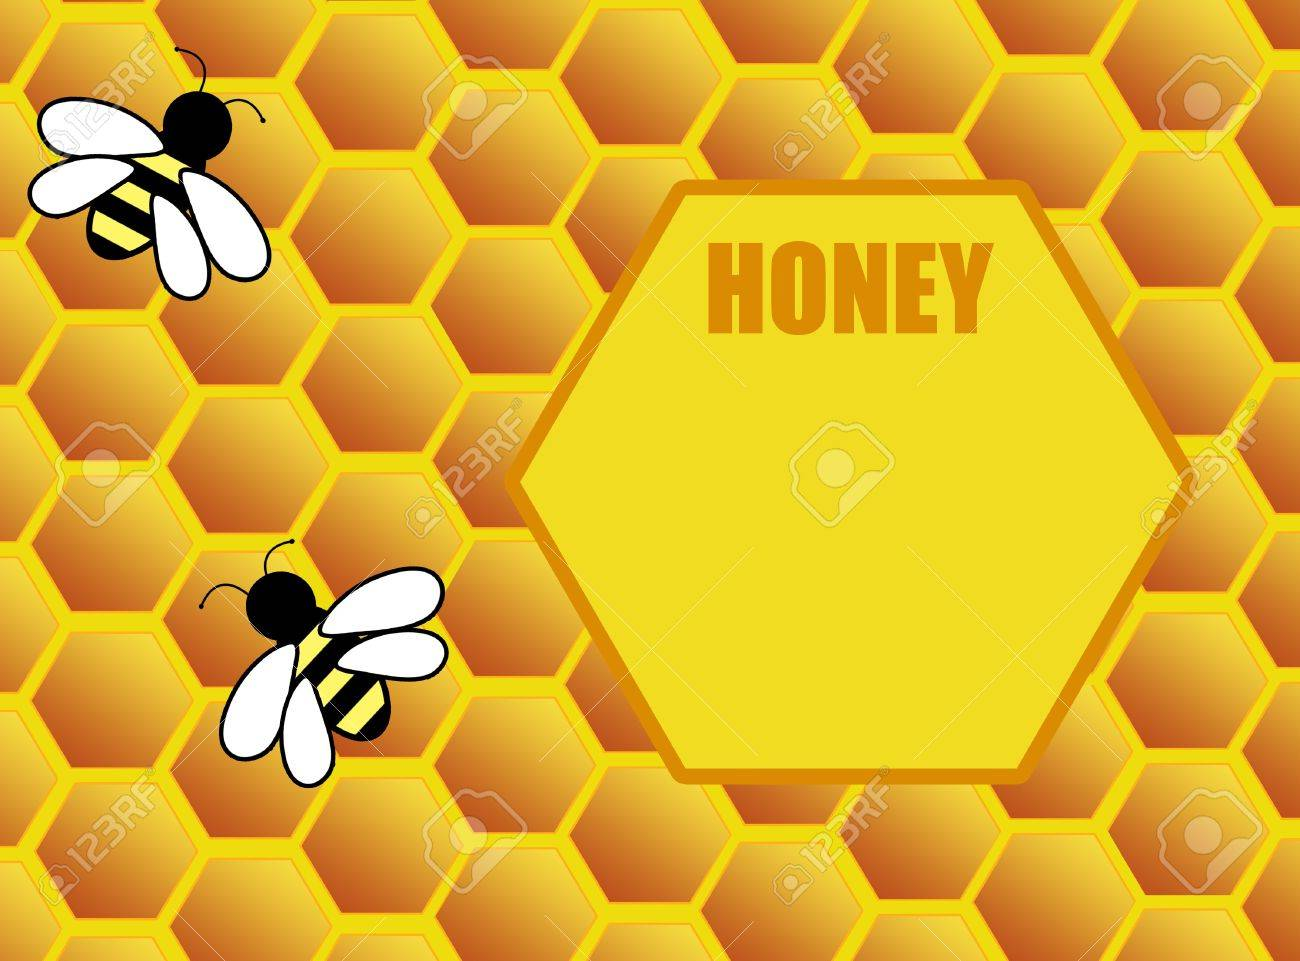 Honeycomb background with bee and space for text, vector illustration Stock Vector - 11359155